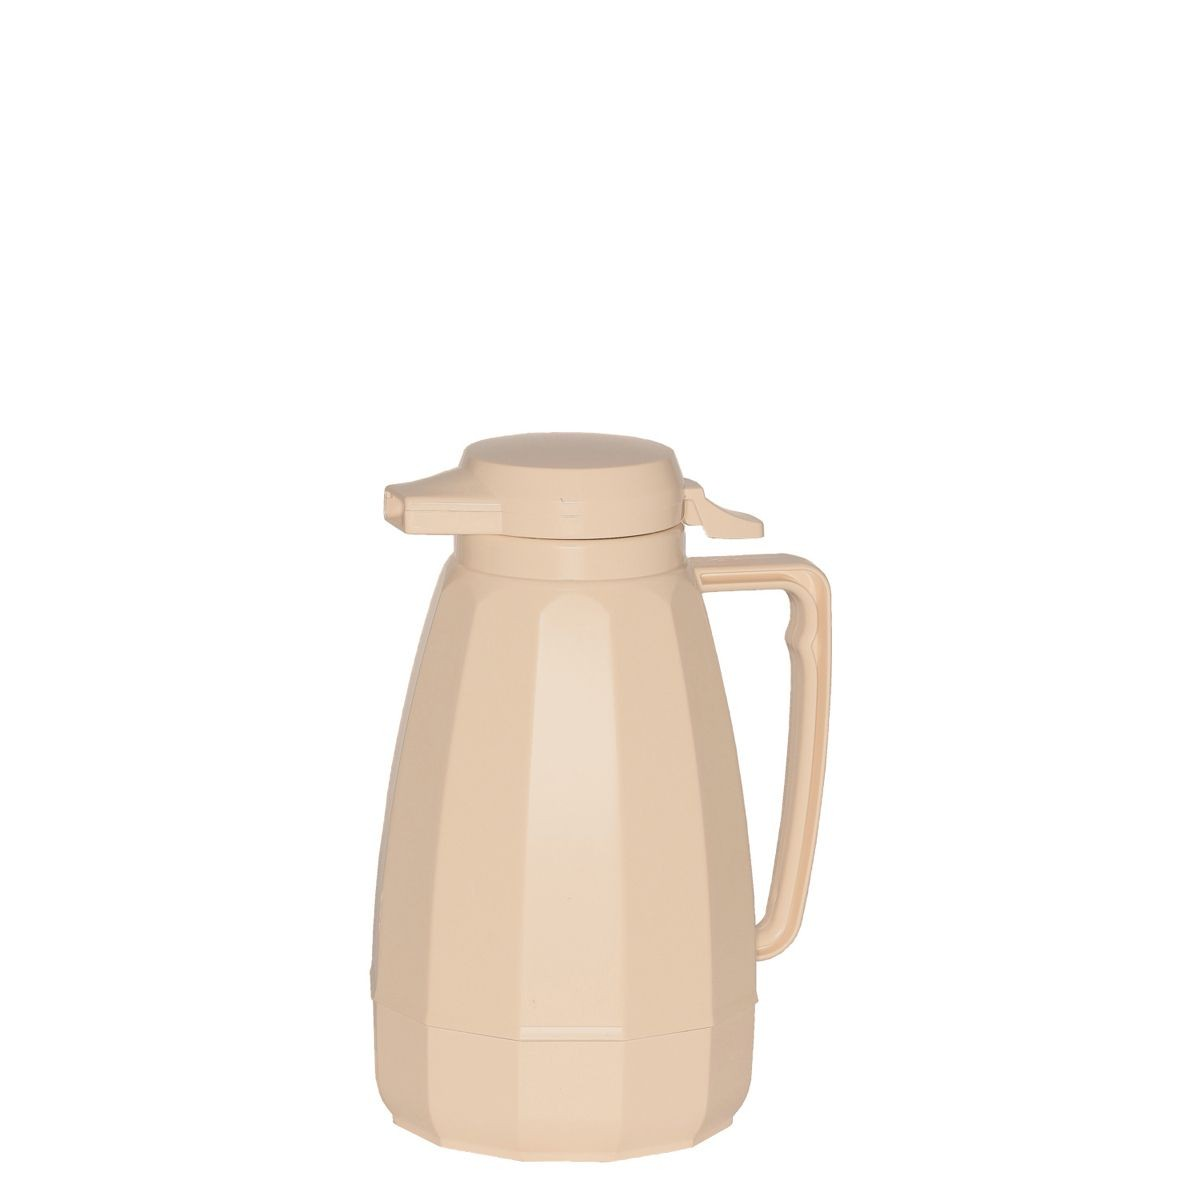 Service Ideas NG101AL New Generation Almond Coffee Server, 1 Liter (34 oz.)